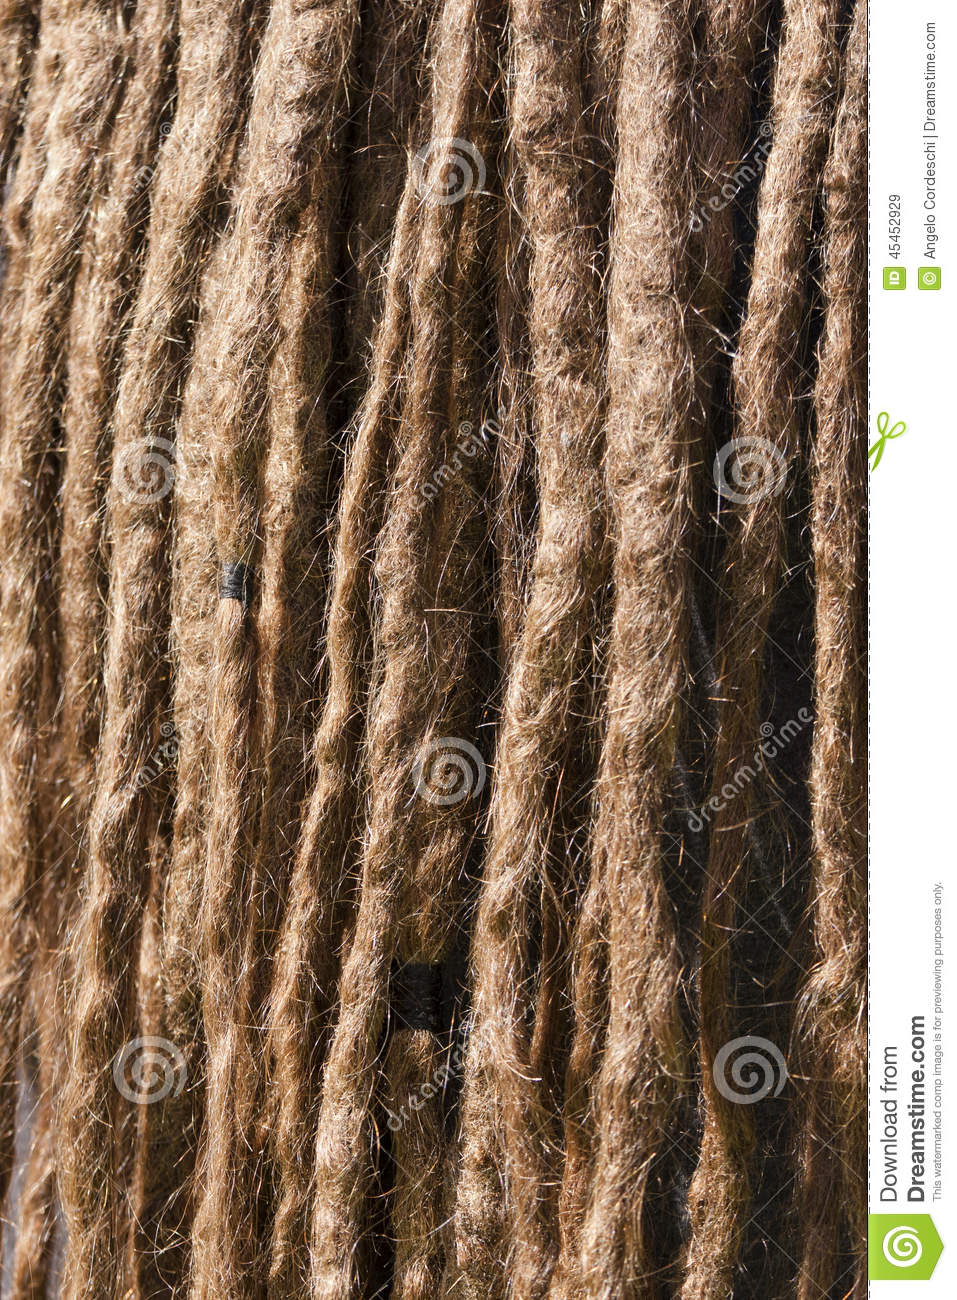 Tangle of dreadlocks. Closeup of a rasta hair